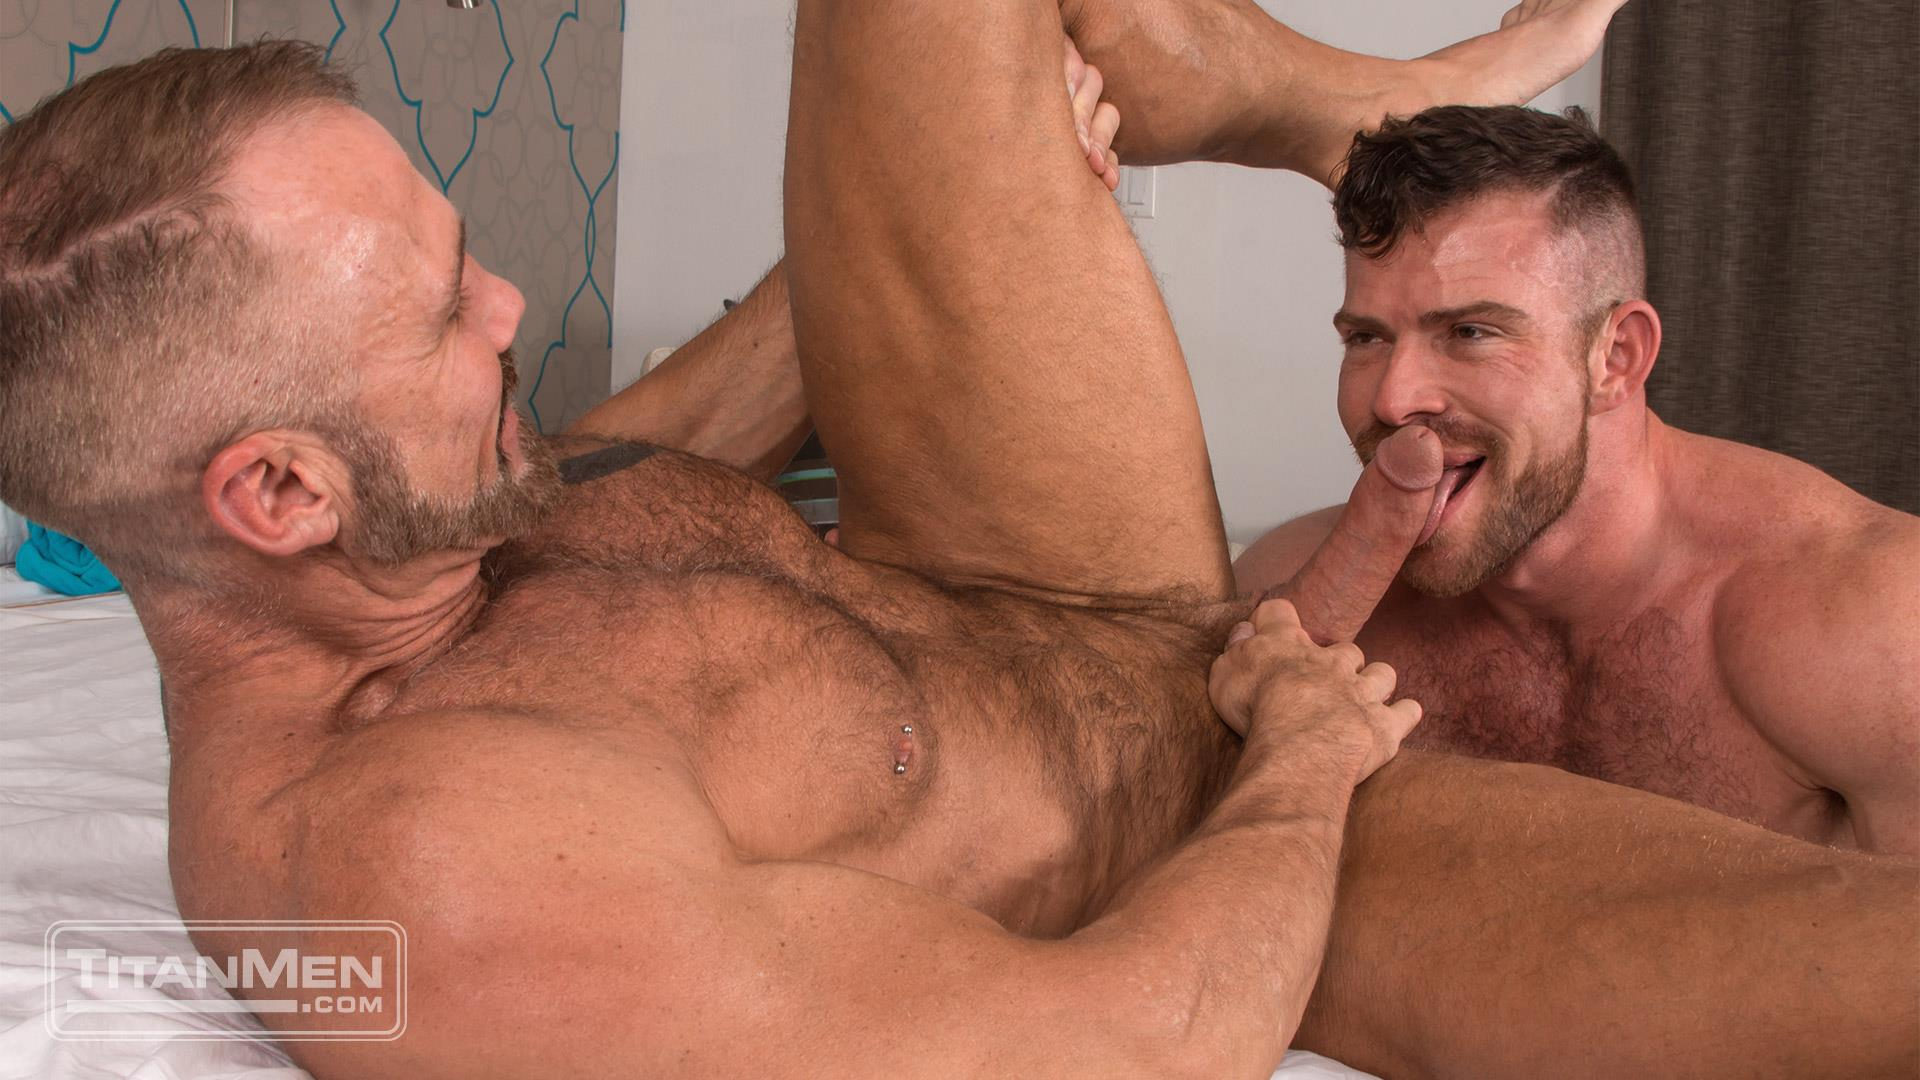 Titan-Men-Dallas-Steele-and-Liam-Knox-Hairy-Muscle-Daddies-Fucking-46 Thick Cock Hairy Muscle Hunks Dallas Steele and Liam Knox Fucking